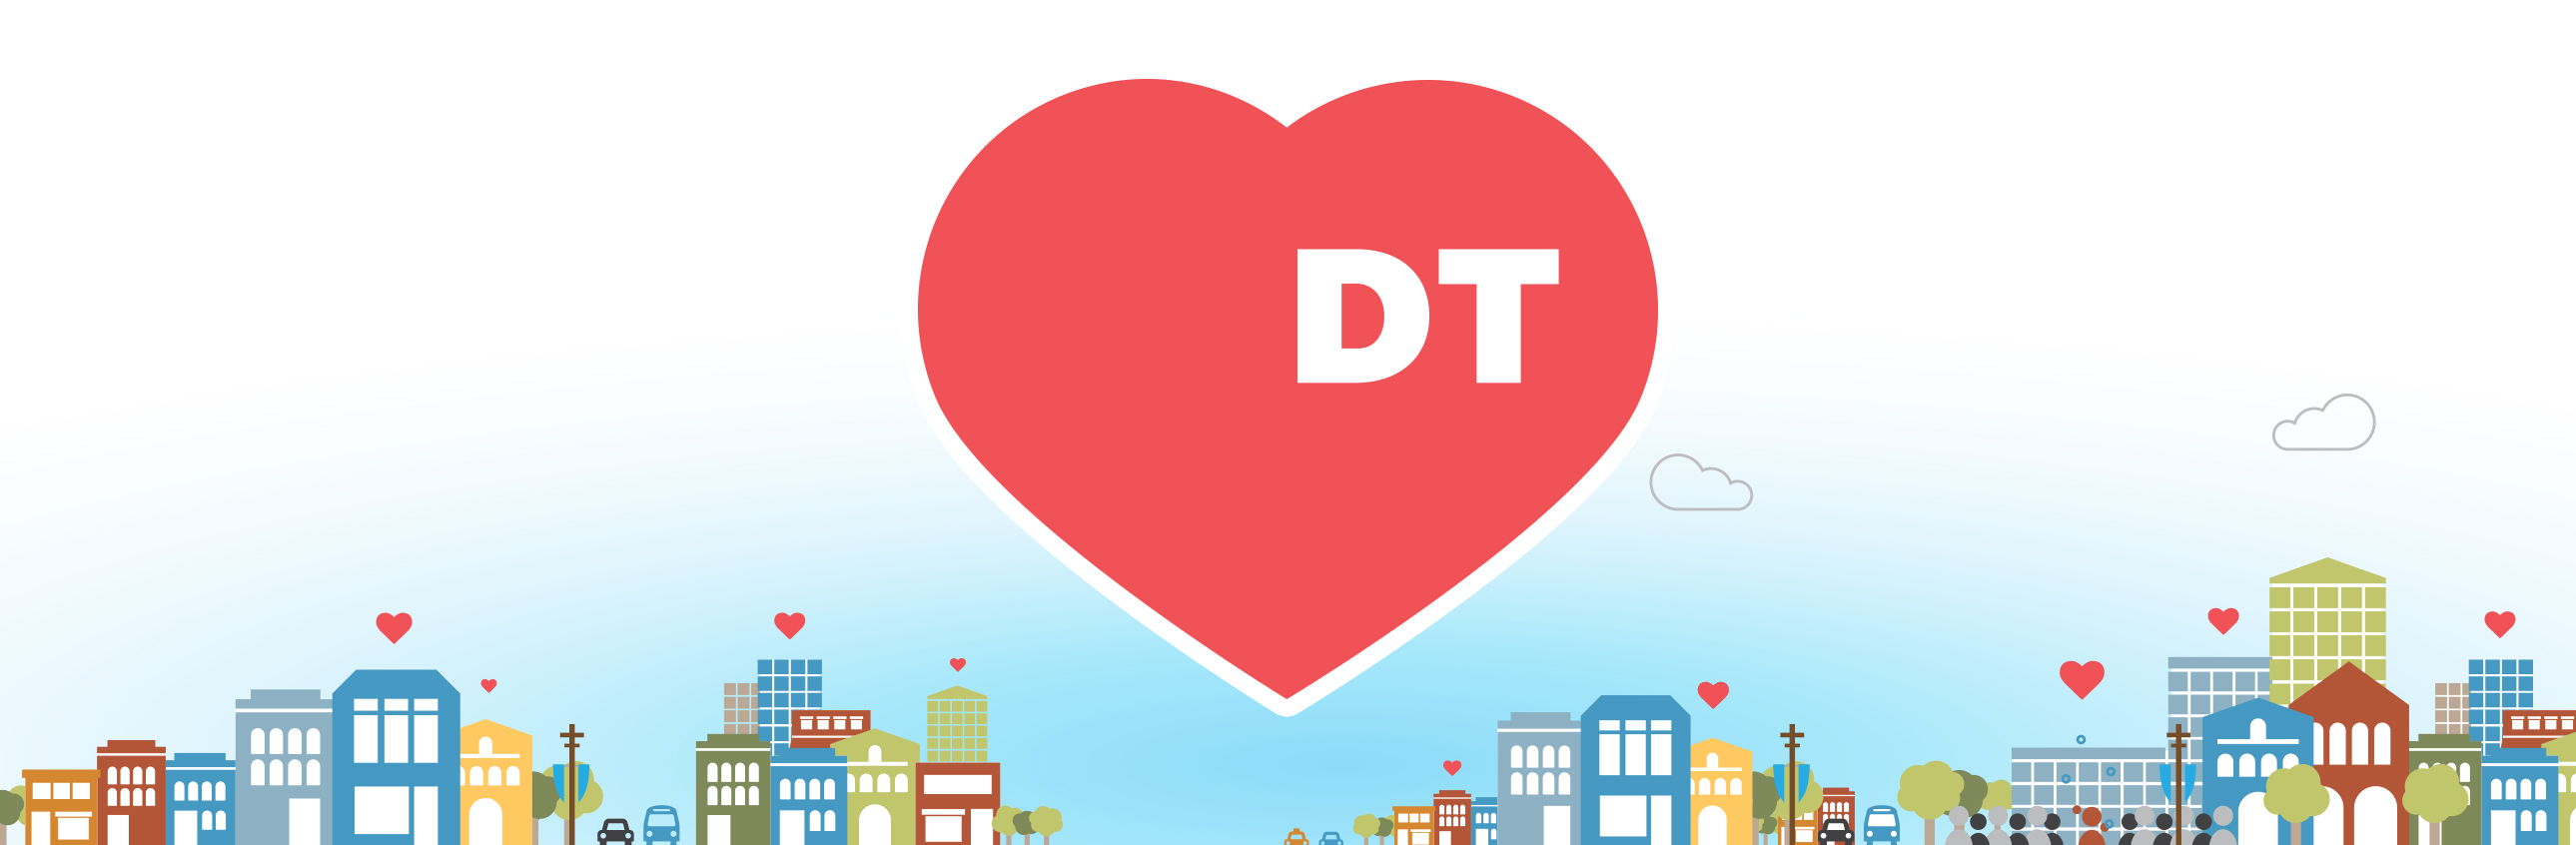 Dc Presents: Love Downtown!